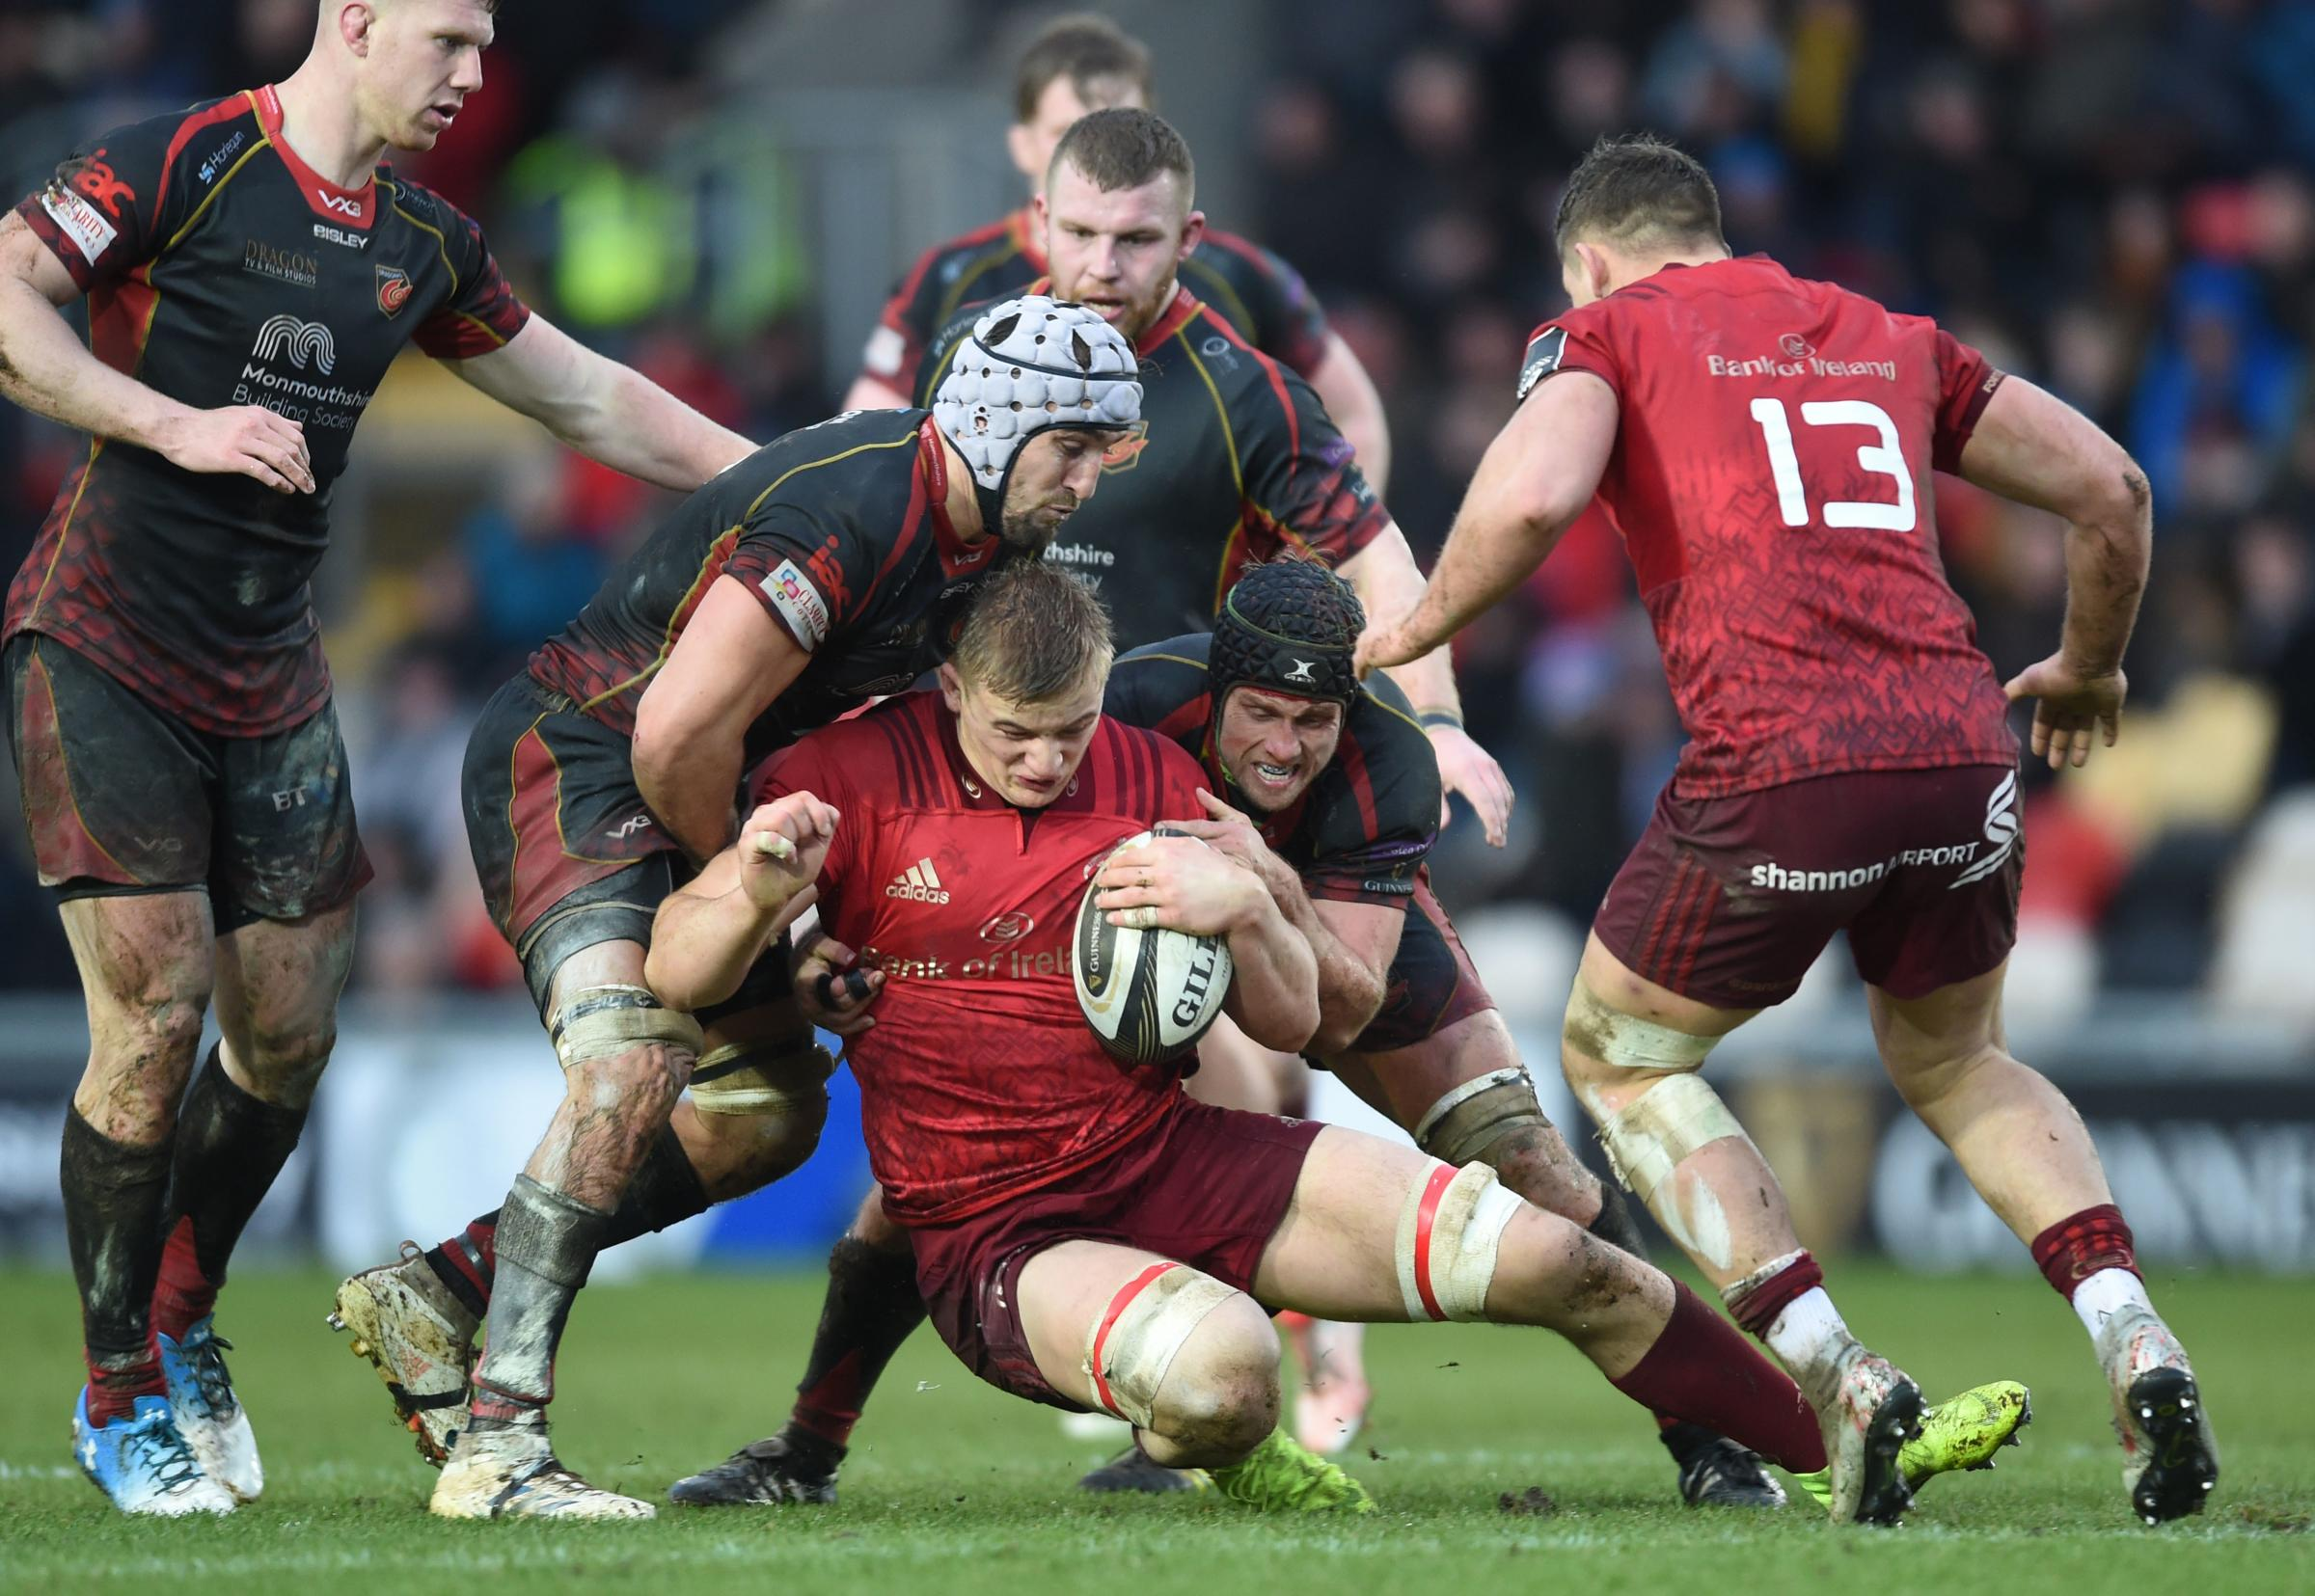 RESILIENT: The Dragons defended strongly against Munster in the Guinness PRO14 clash at the end of last month